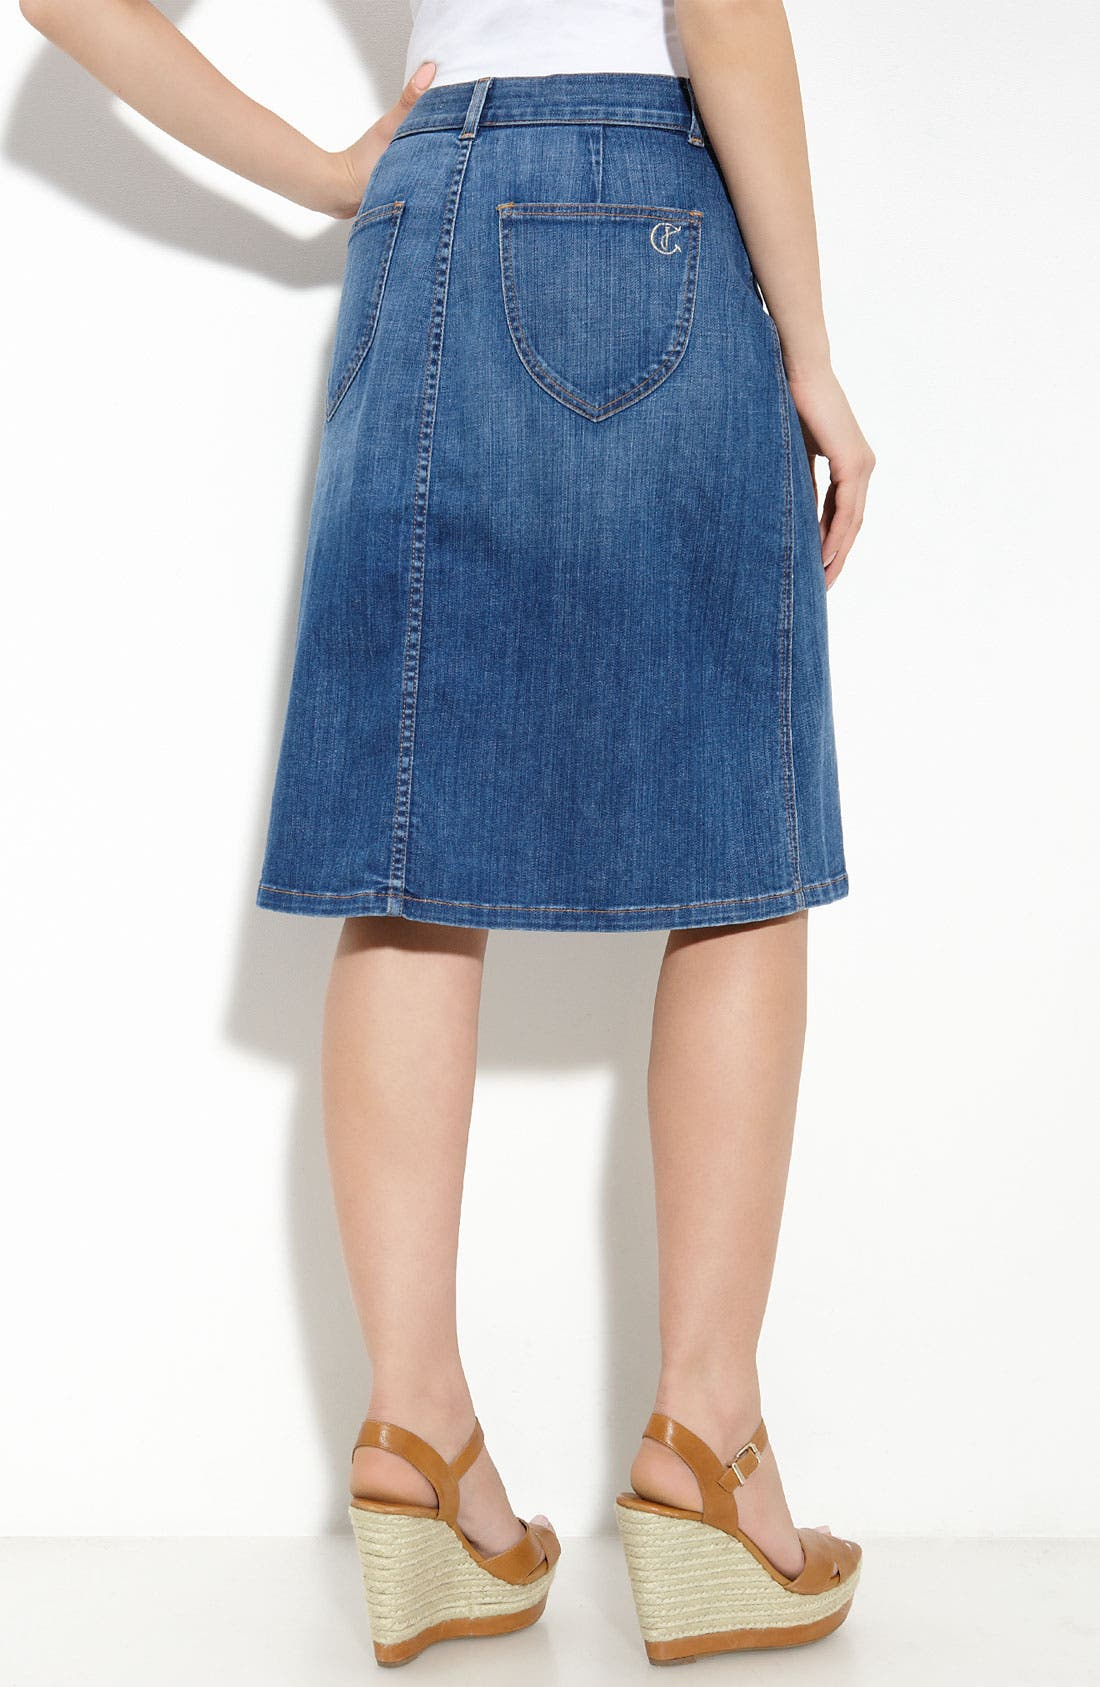 Alternate Image 2  - CJ by Cookie Johnson 'Unity' Skirt (New Vintage Blue Wash)